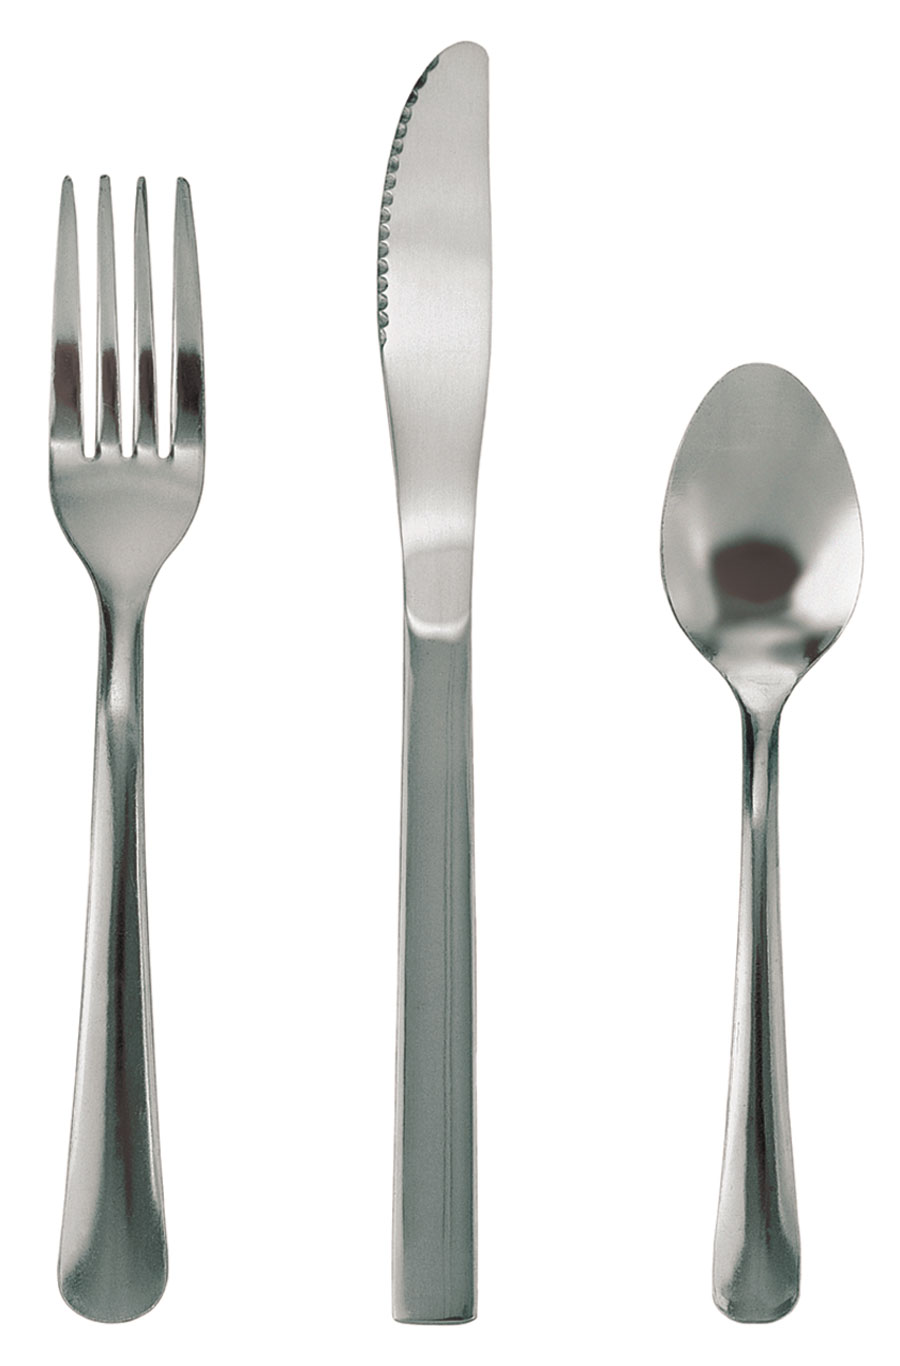 Update International WM/CP-33 Windsor Medium Weight Dessert Spoon in Clear Pack - 2 doz